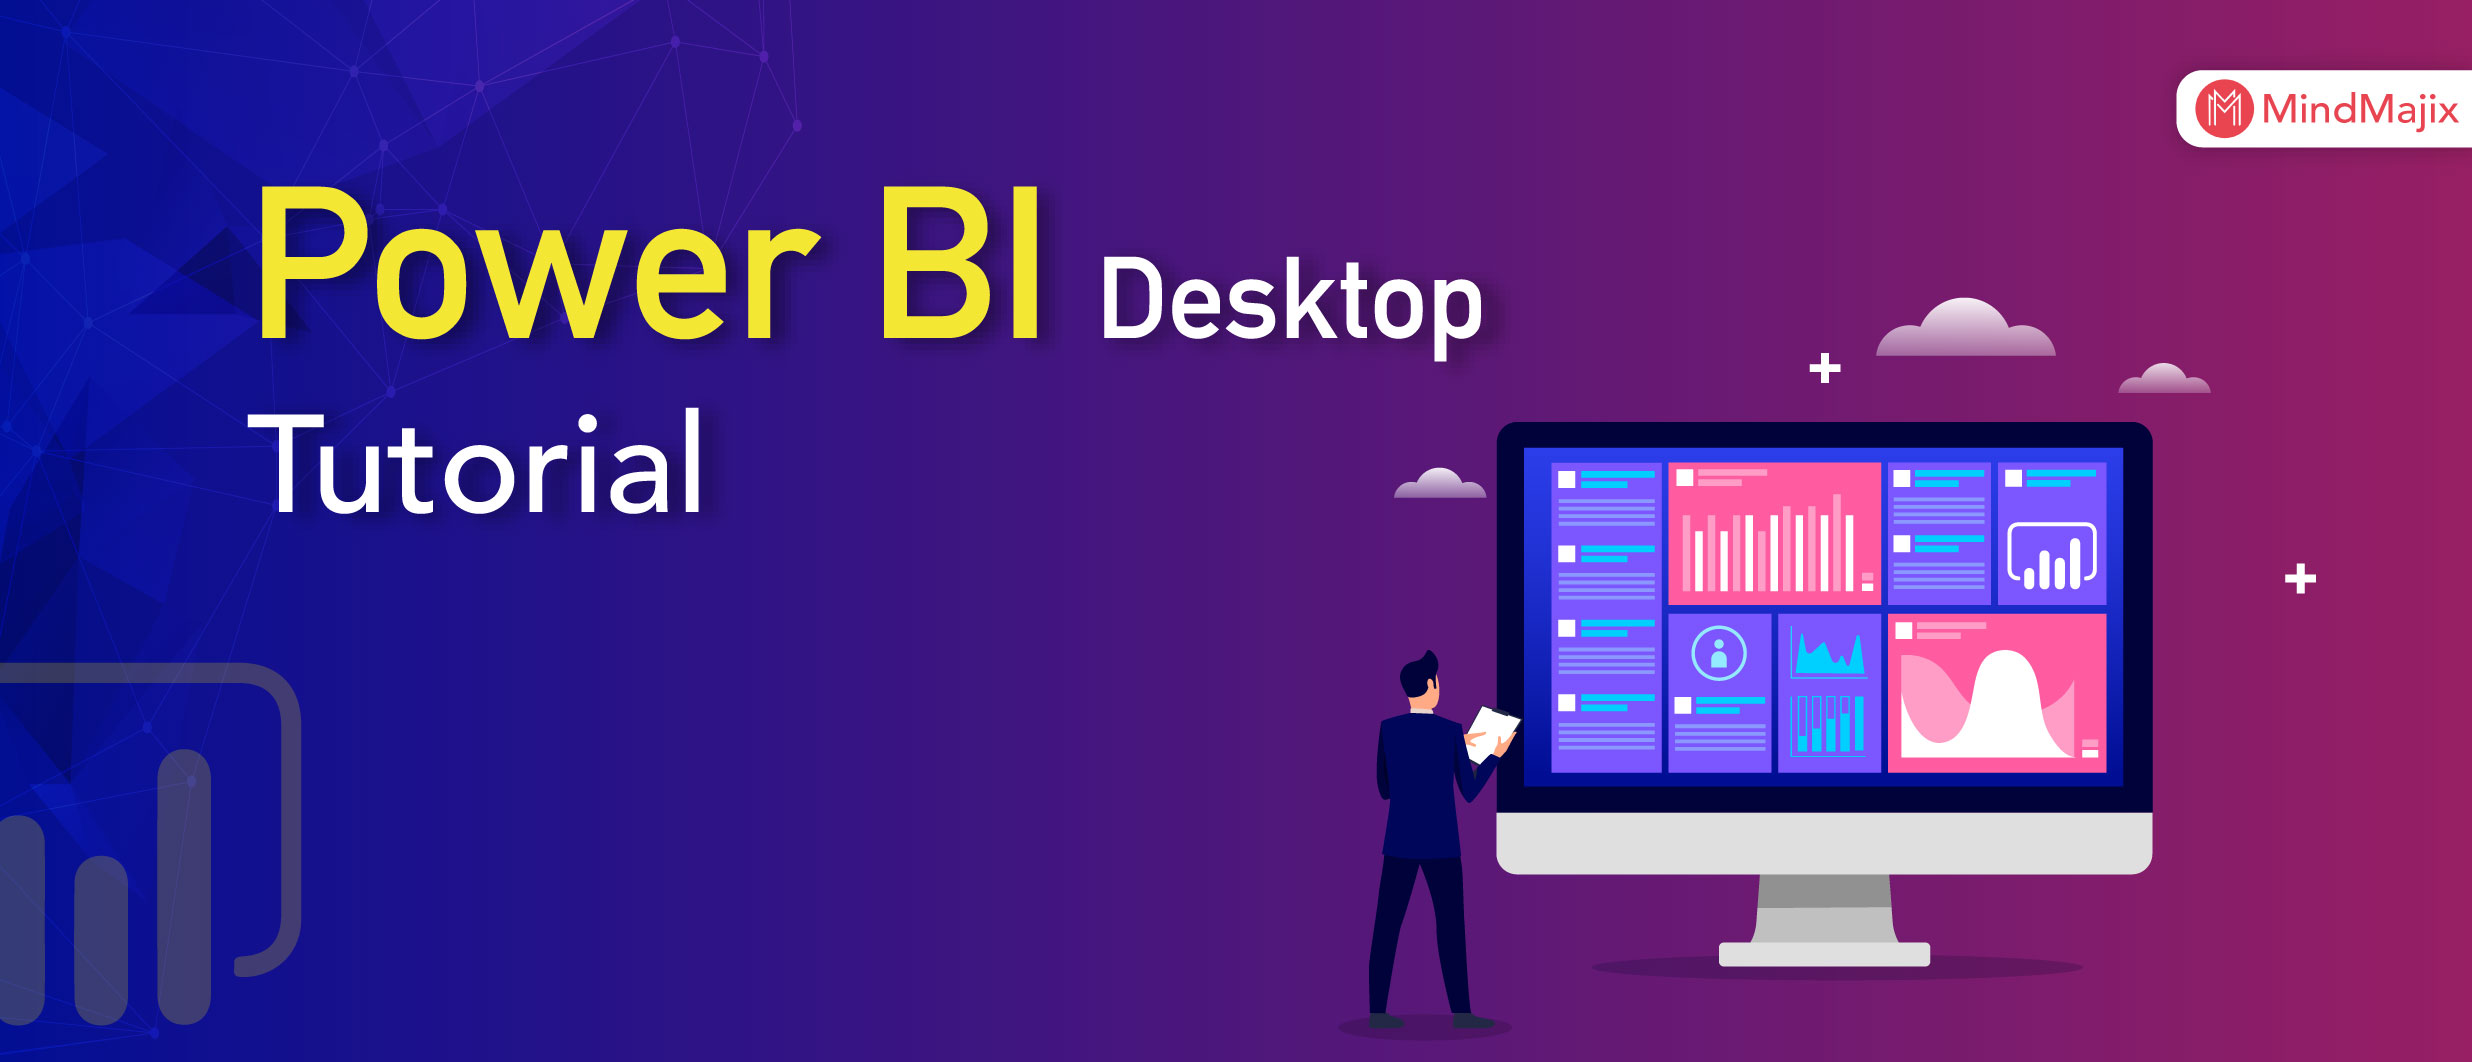 Power BI Desktop Tutorial - A Complete Guide For Beginners